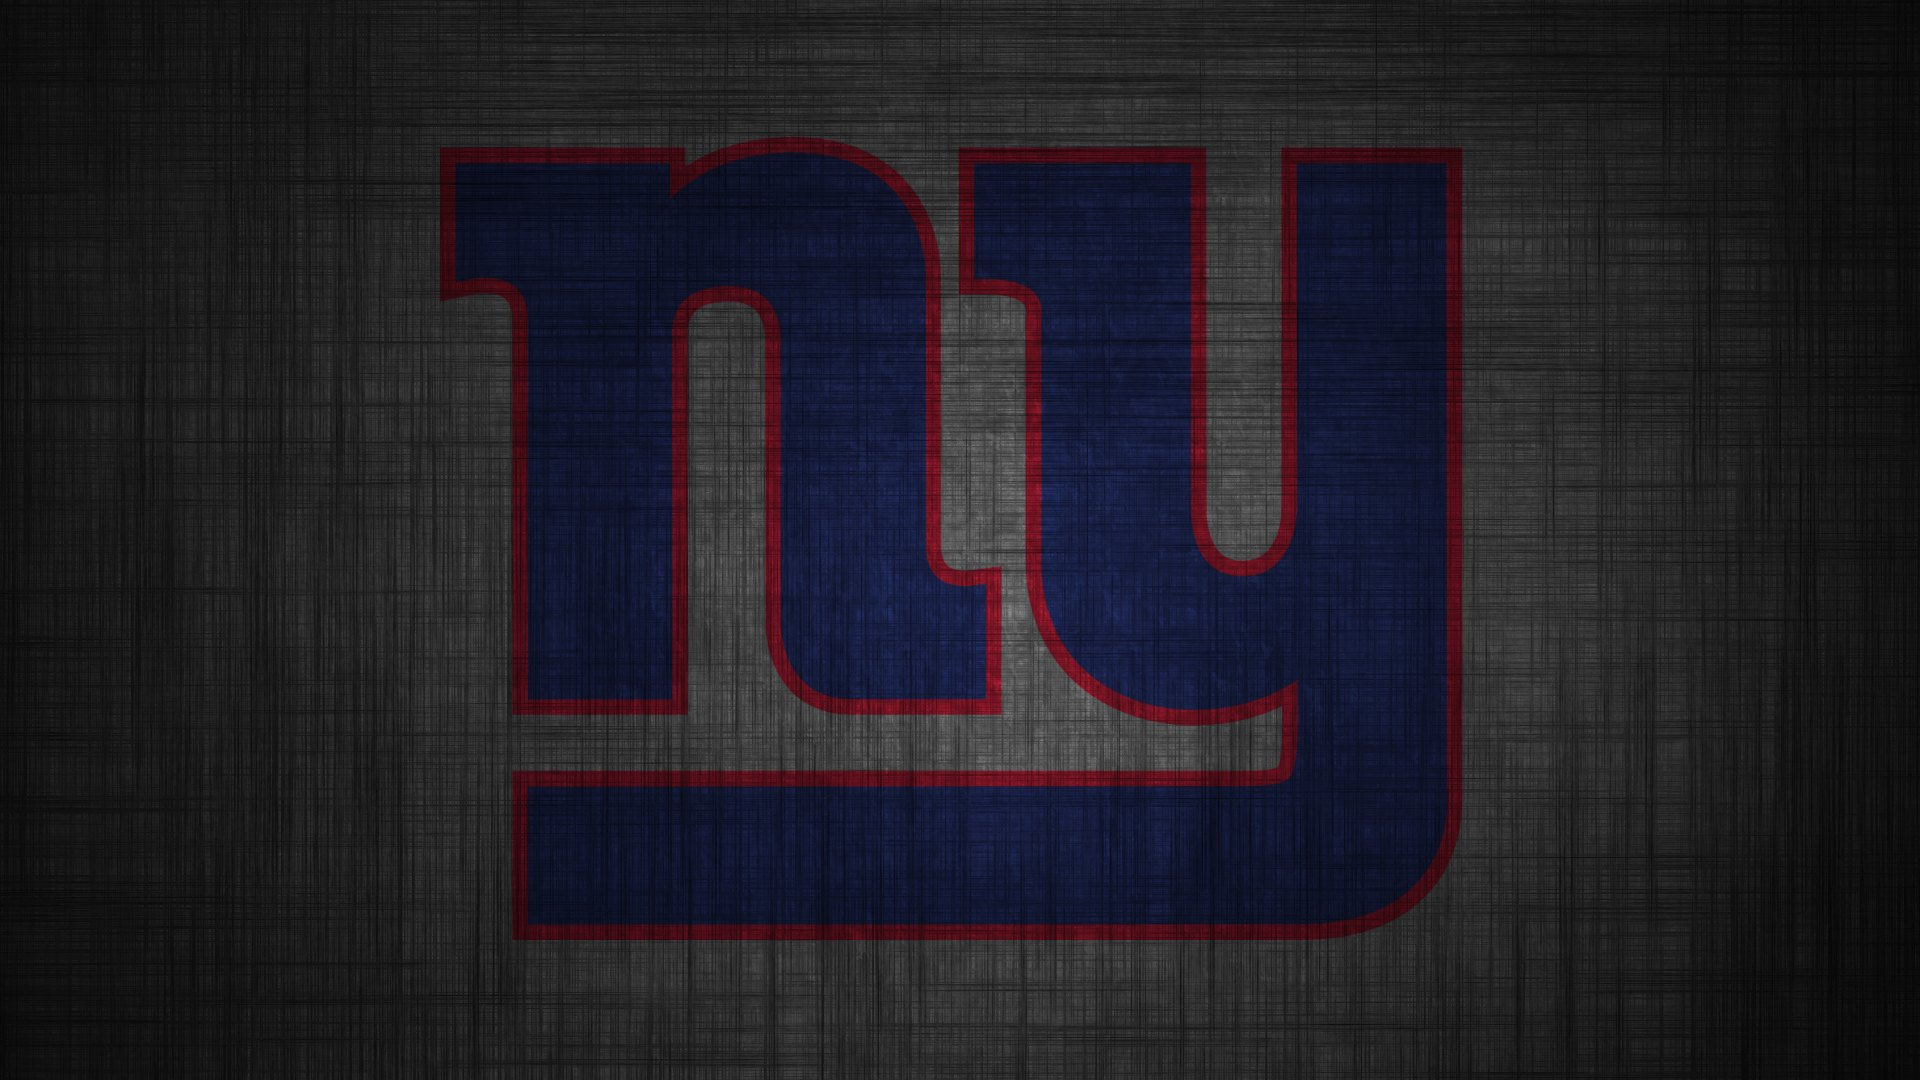 11 Hd New York Giants Wallpapers Hdwallsource Com HD Wallpapers Download Free Images Wallpaper [1000image.com]